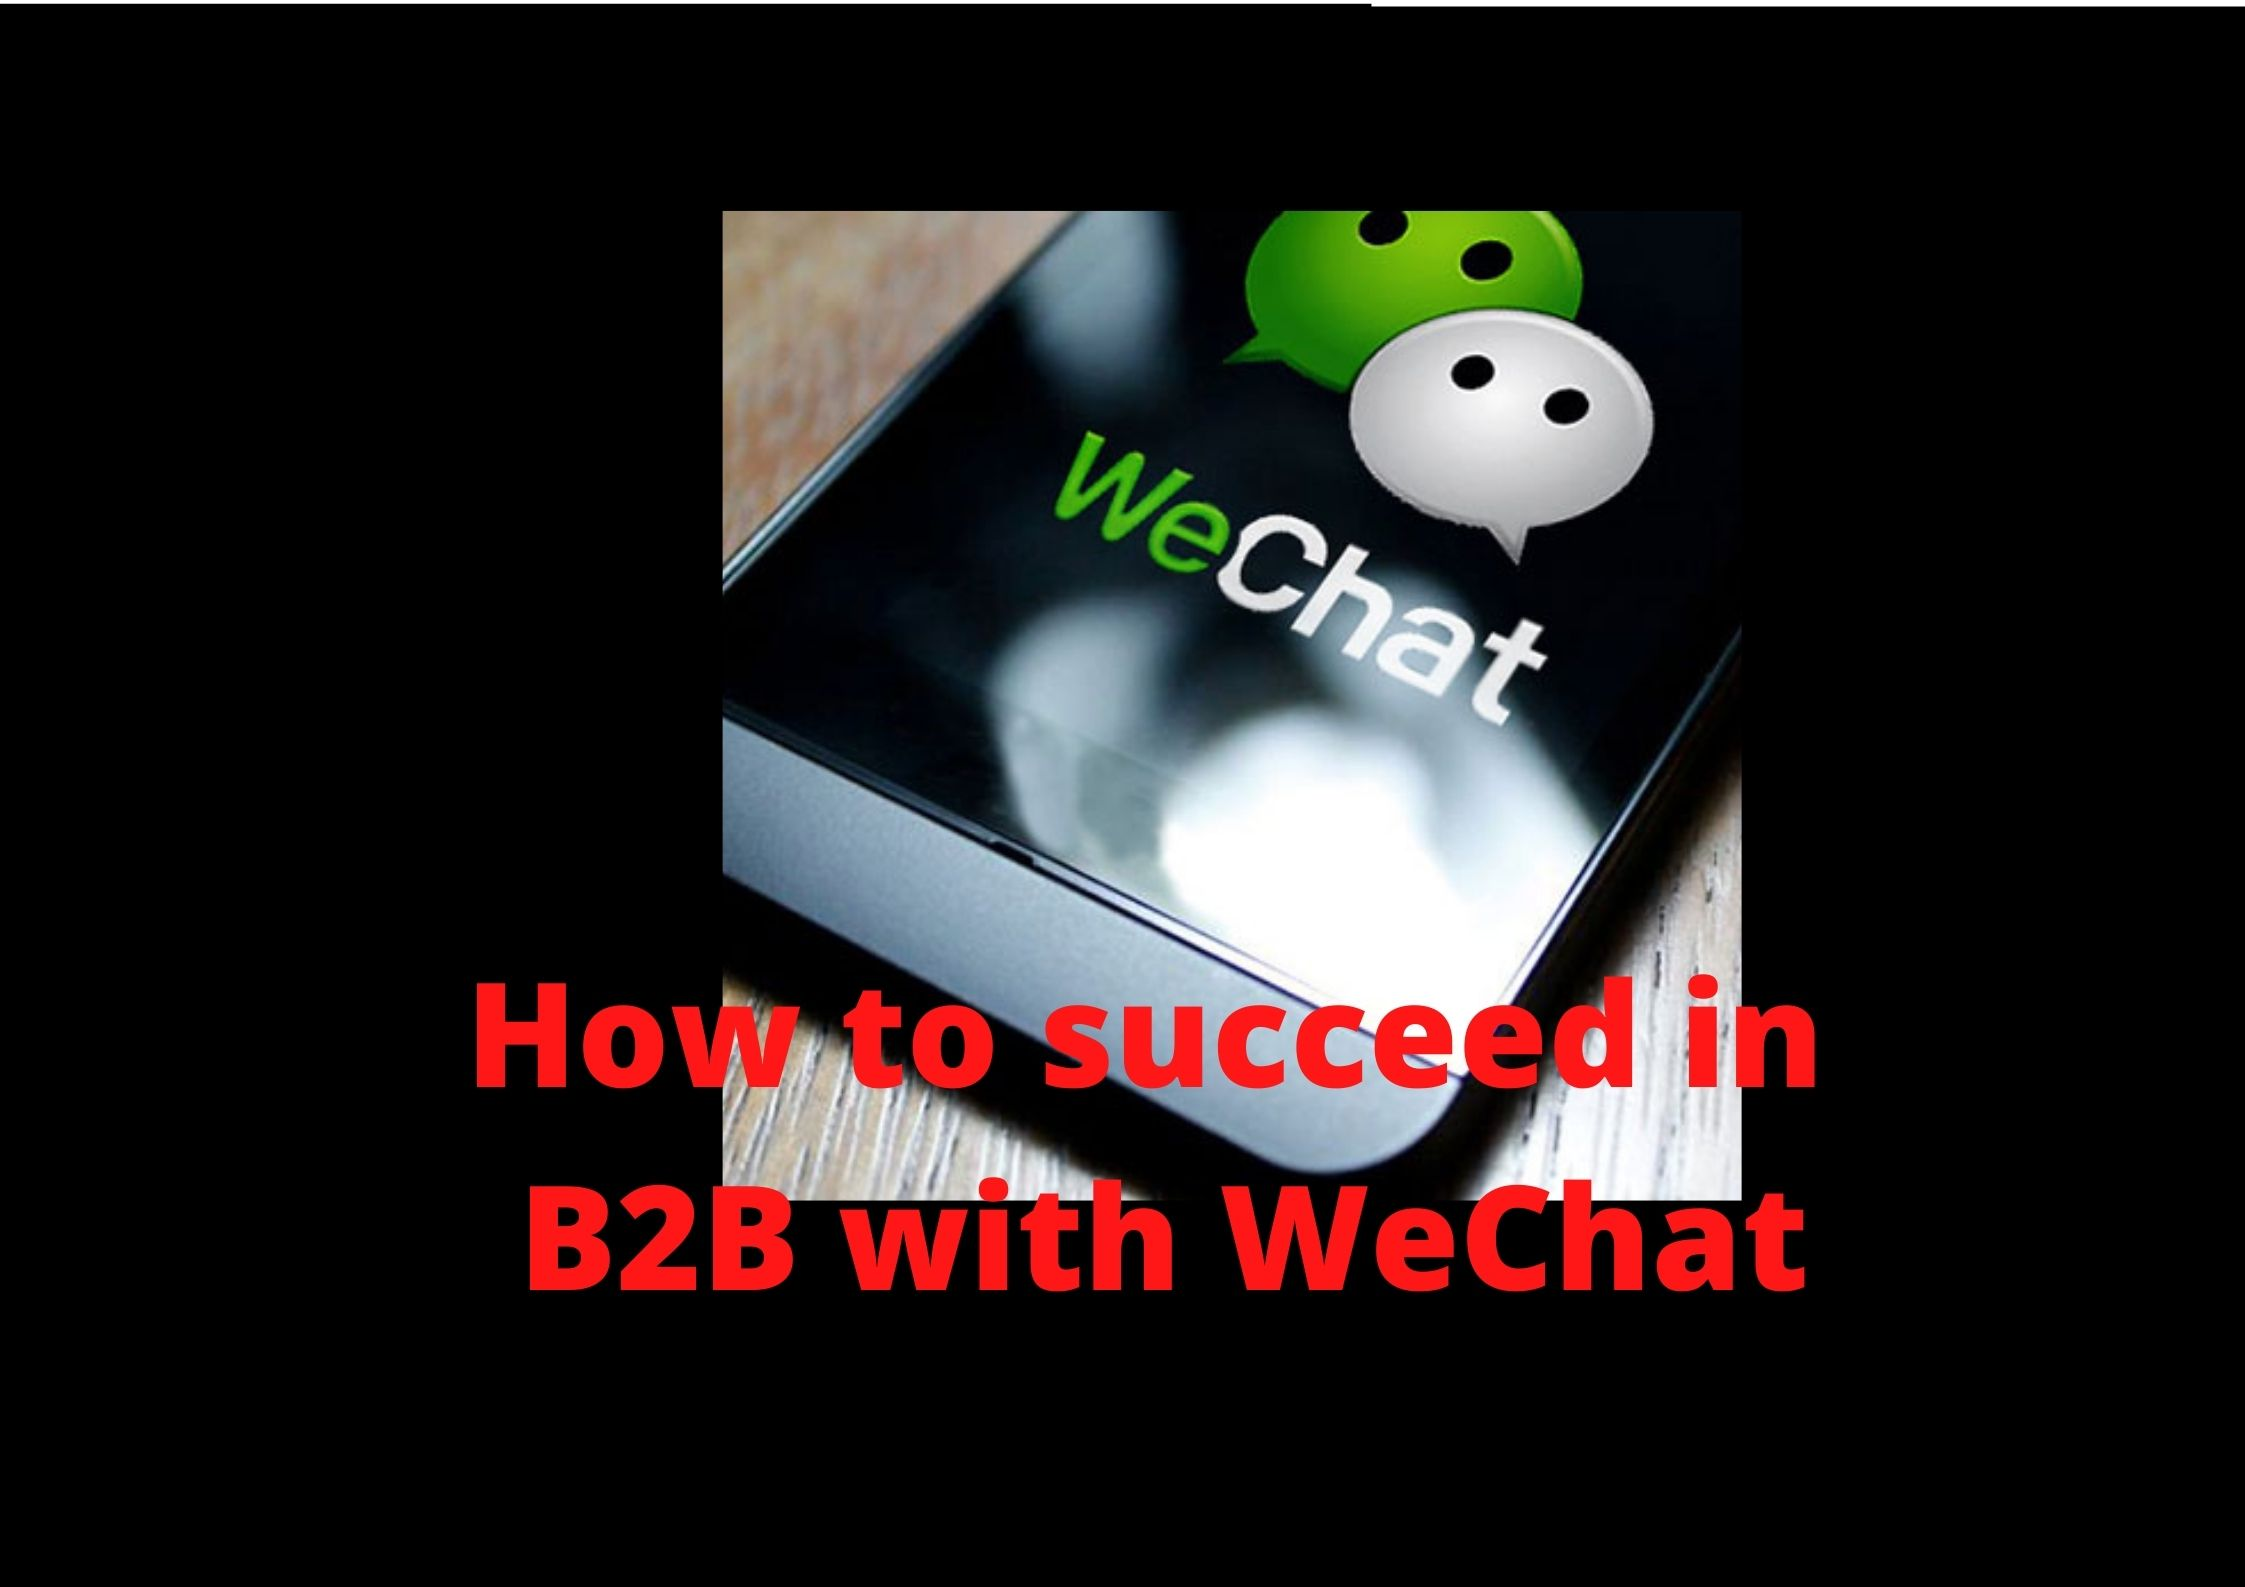 How to succeed in B2B with WeChat